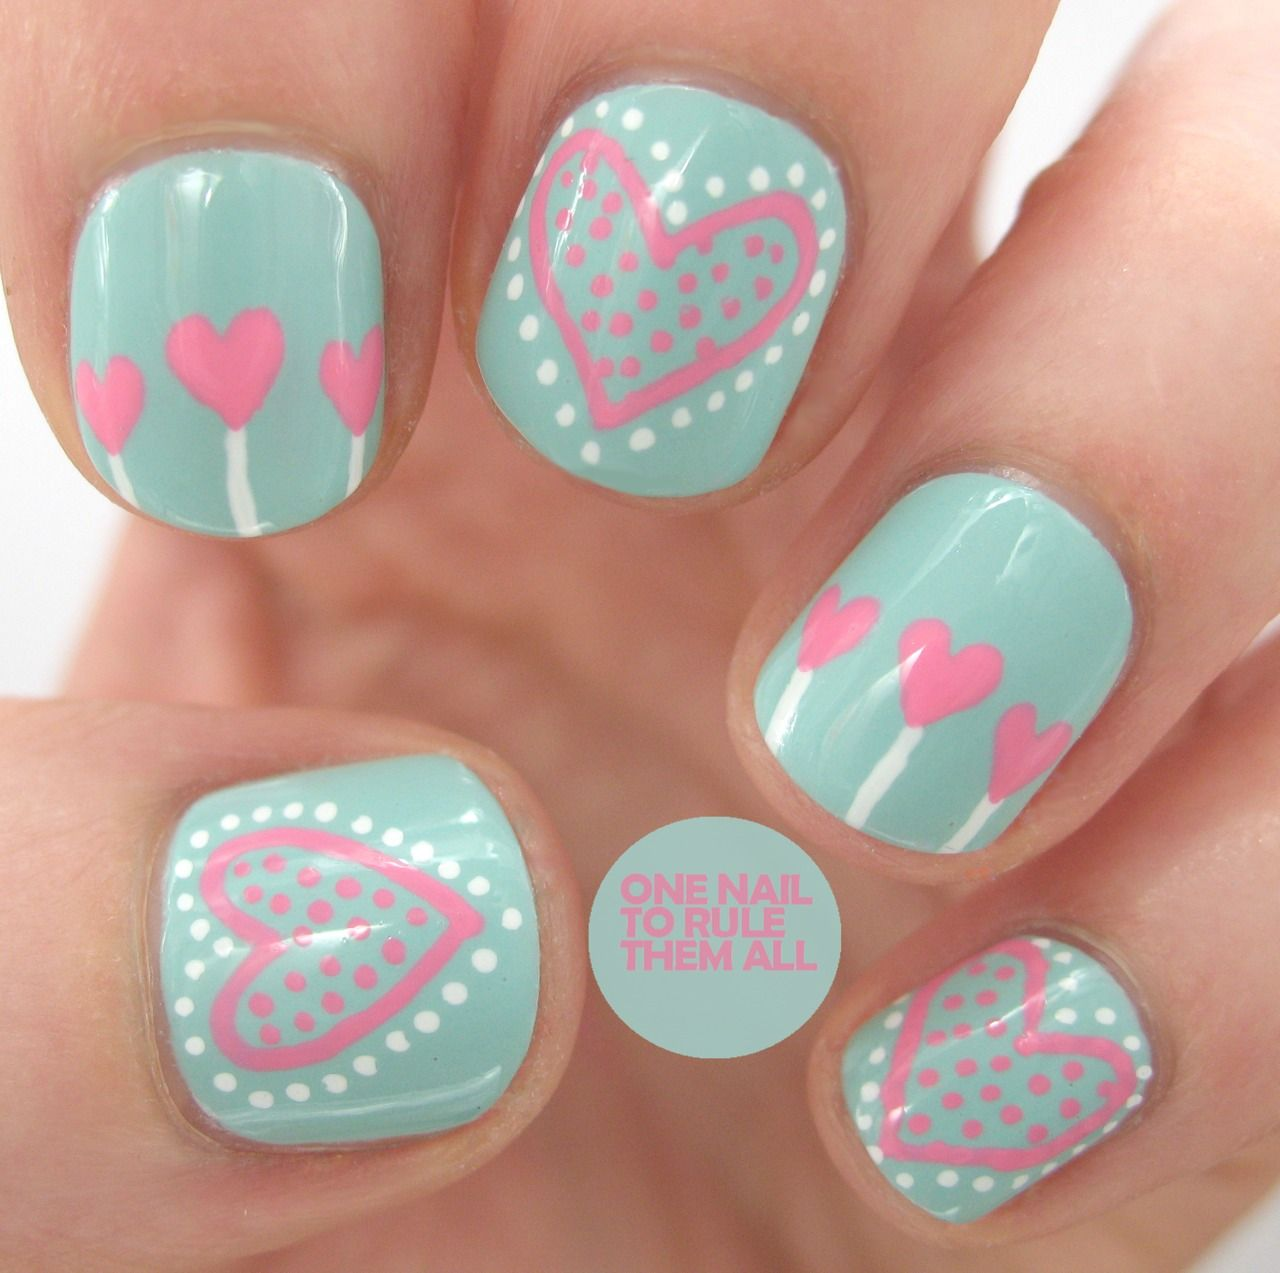 Hawaiian nail art designs nails for teens girls nail designs hawaiian nail art designs nails for teens girls nail designs 2014 stylish prinsesfo Image collections